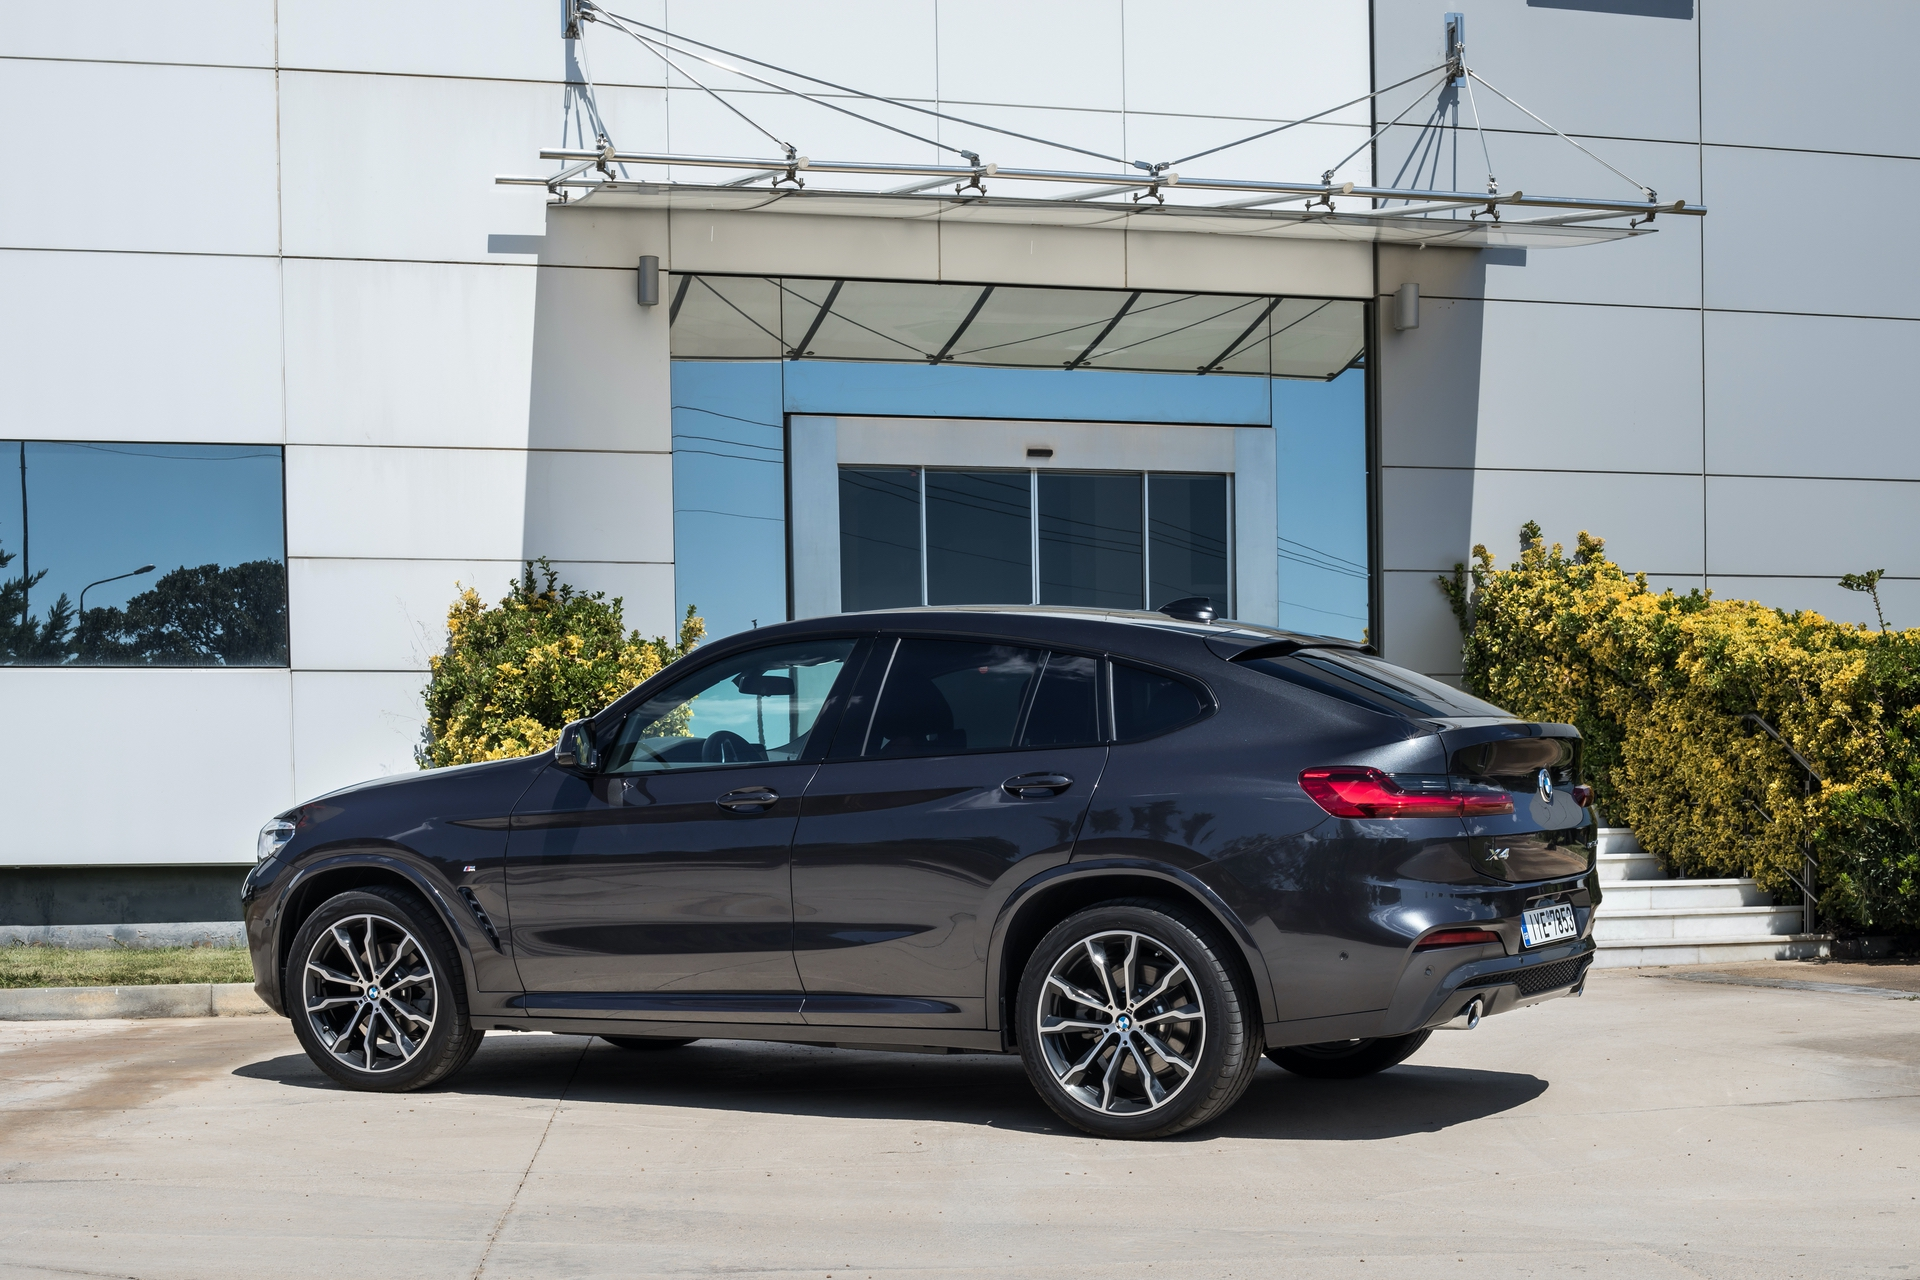 BMW_X4_greek_presskit_0058